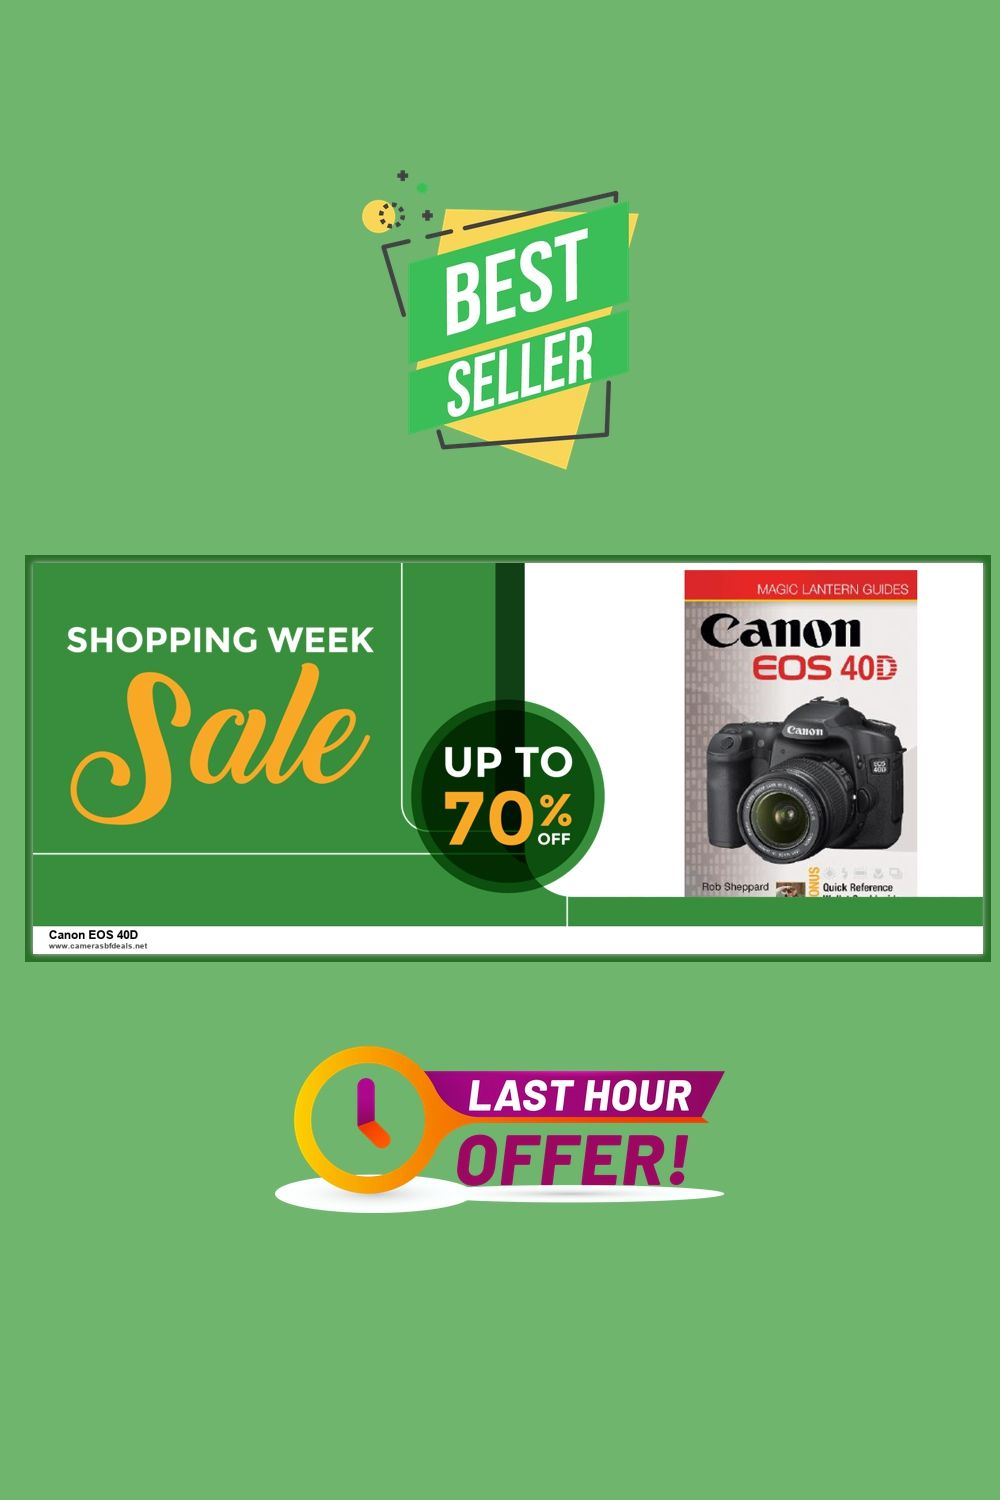 10 Best Black Friday Canon Eos 40d Deals Sales 2020 In 2020 Canon Eos Eos Black Friday